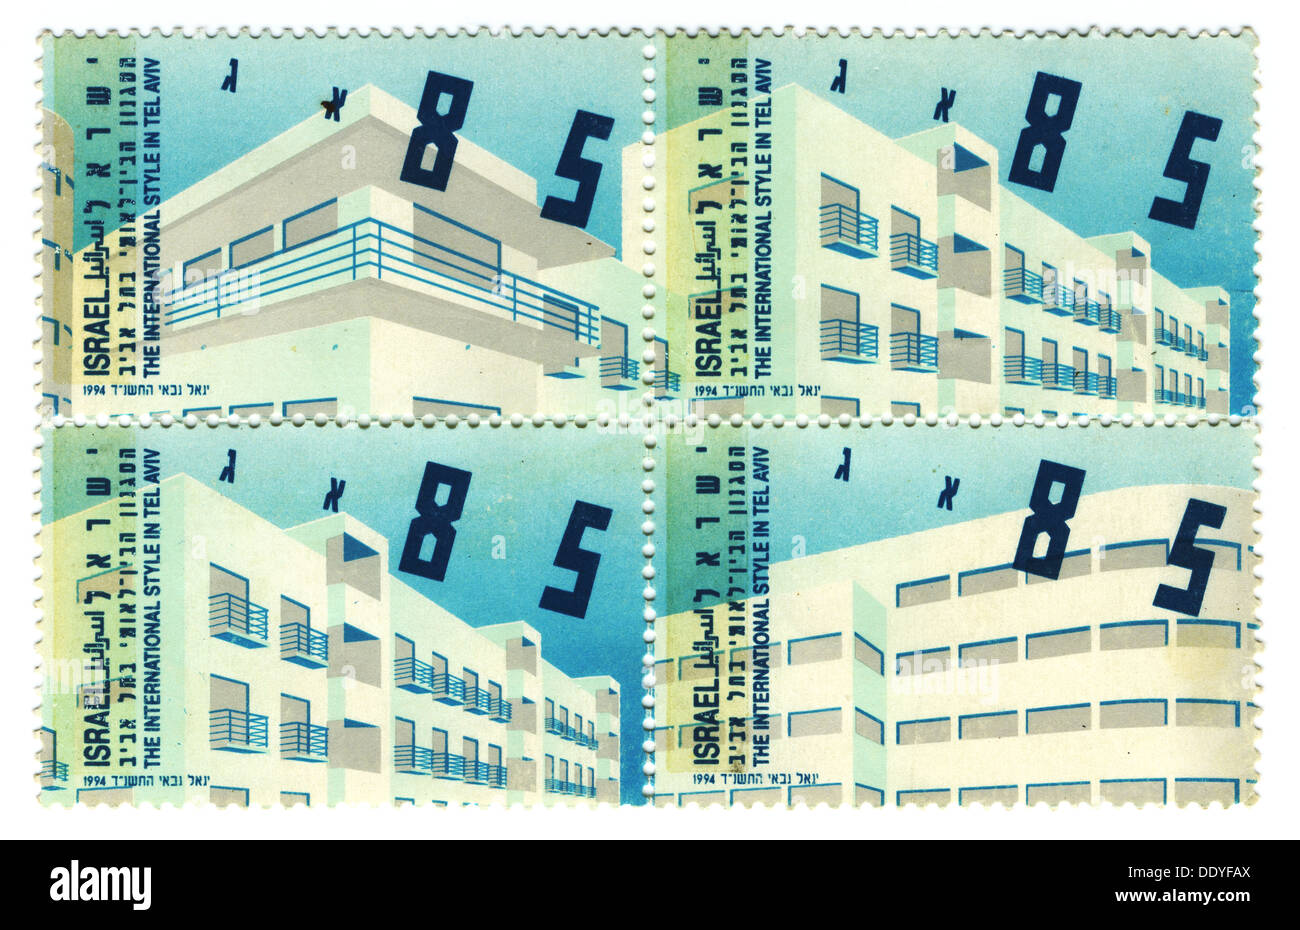 1994 Israeli stamps depicting Bauhaus architecture in tel Aviv Israel. Tel Aviv is a UNESCO World Heritage Site for its unique architecture, home to the largest amount of International 'Bauhaus' style buildings in the world (4,000). - Stock Image